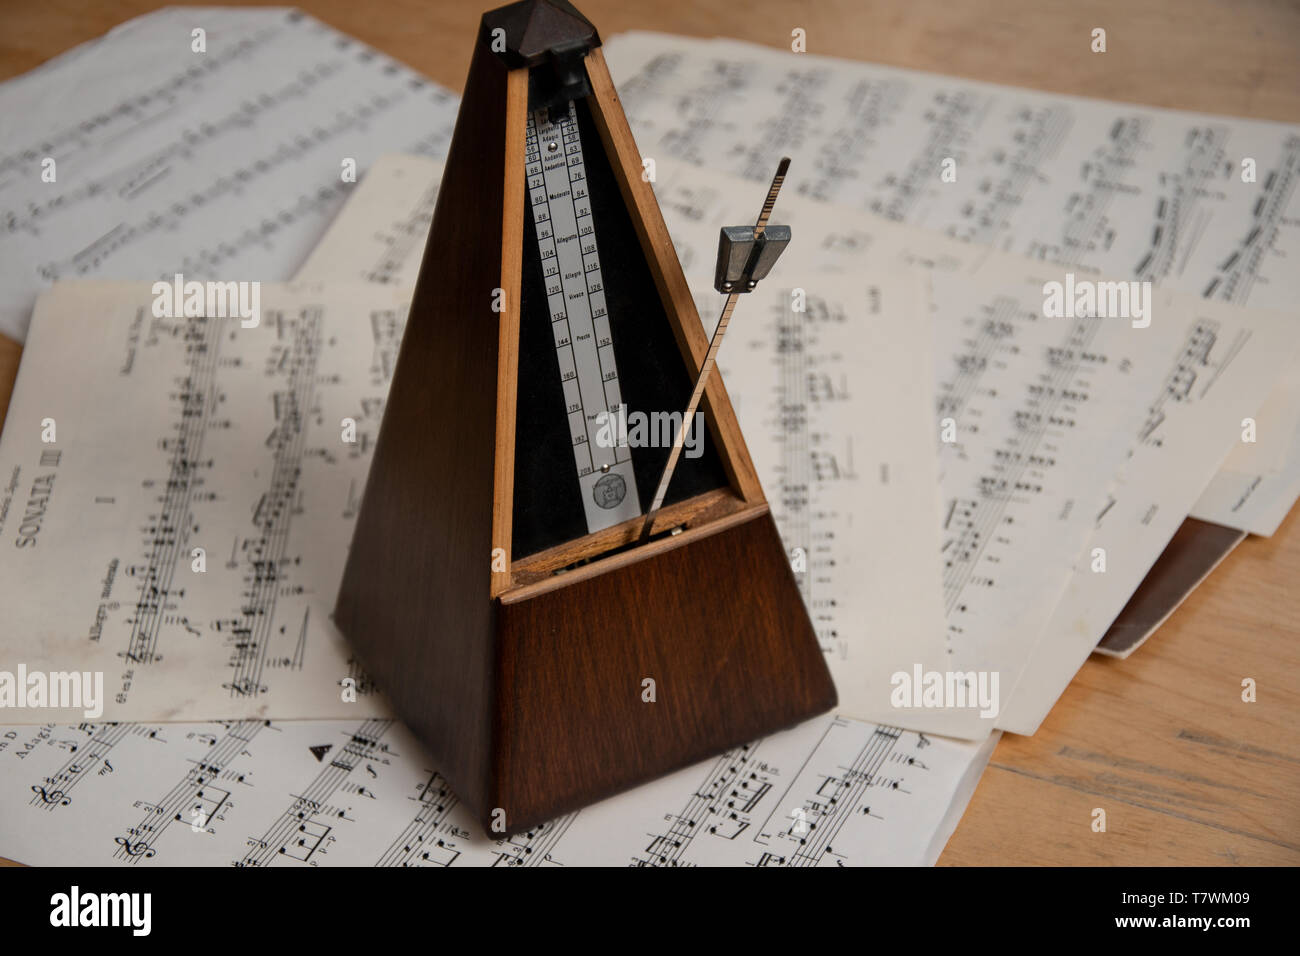 Old style Paquet wooden pyramid metronome standing on bundle of sheet music - Stock Image